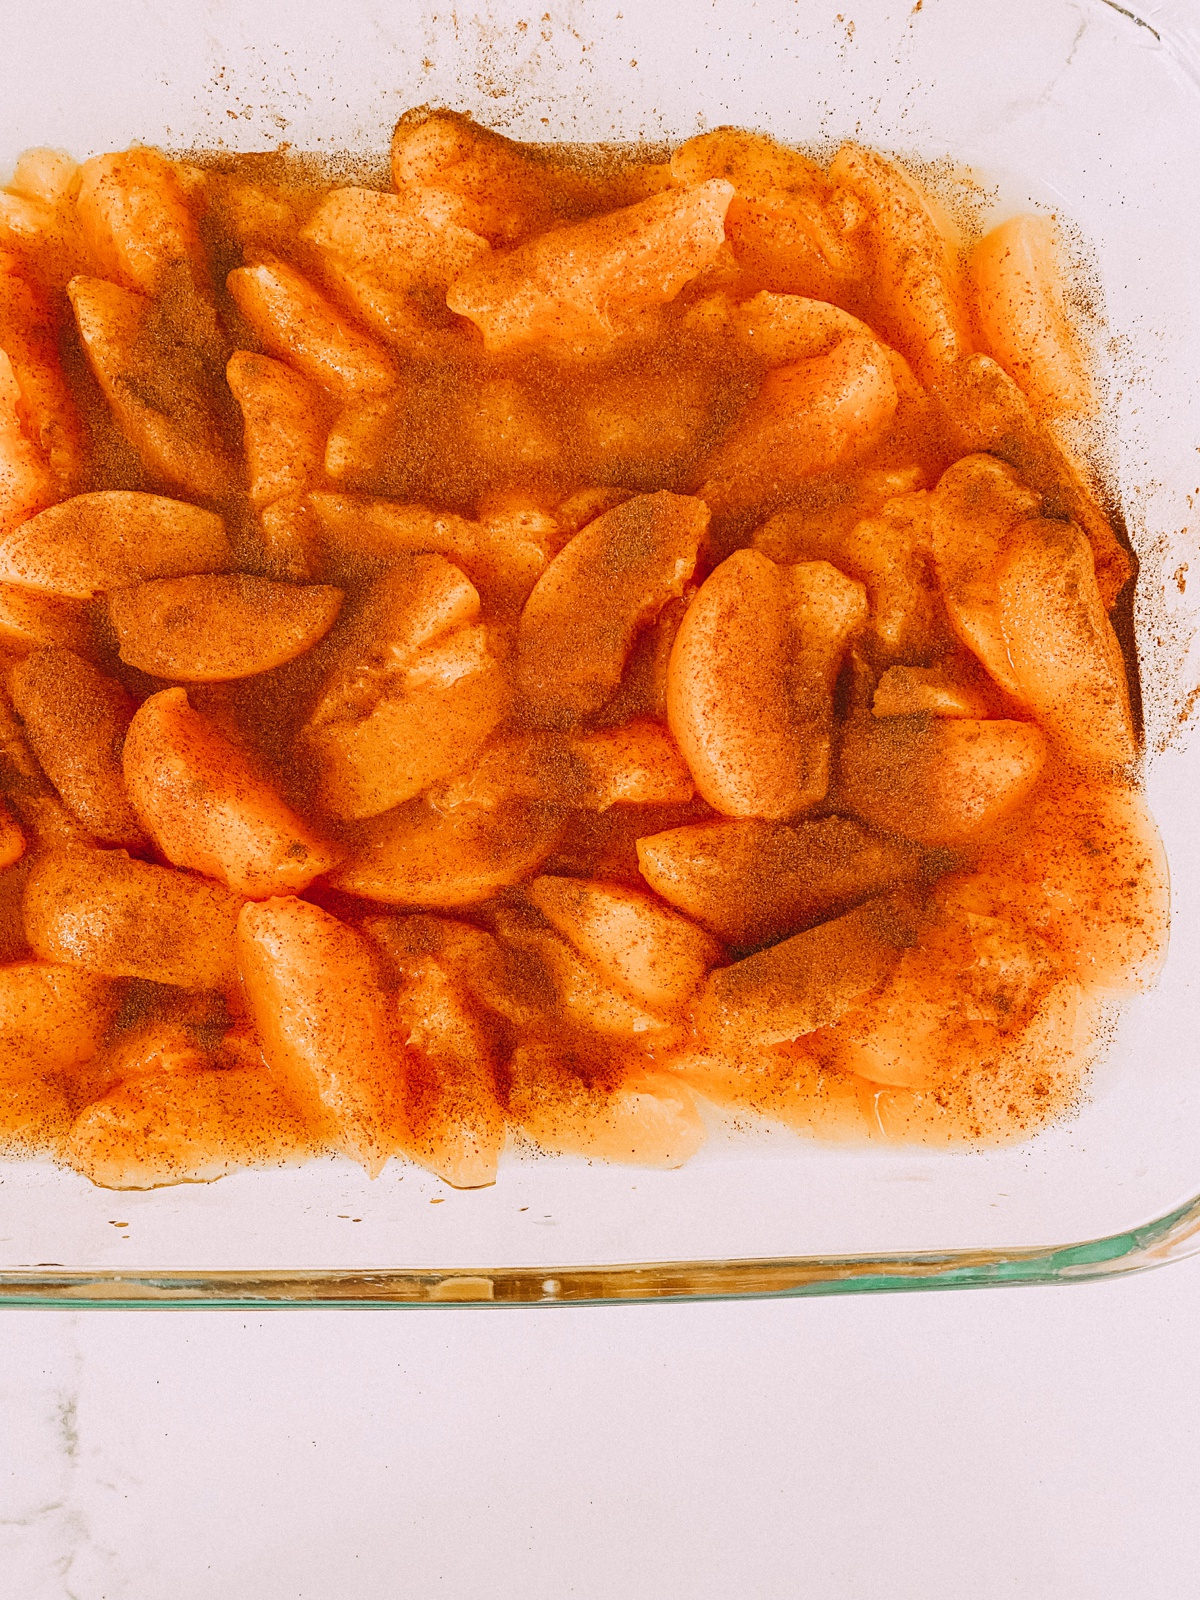 Cinnamon is the secret ingredient for my easy peach cobbler recipe. www.twistmepretty.com